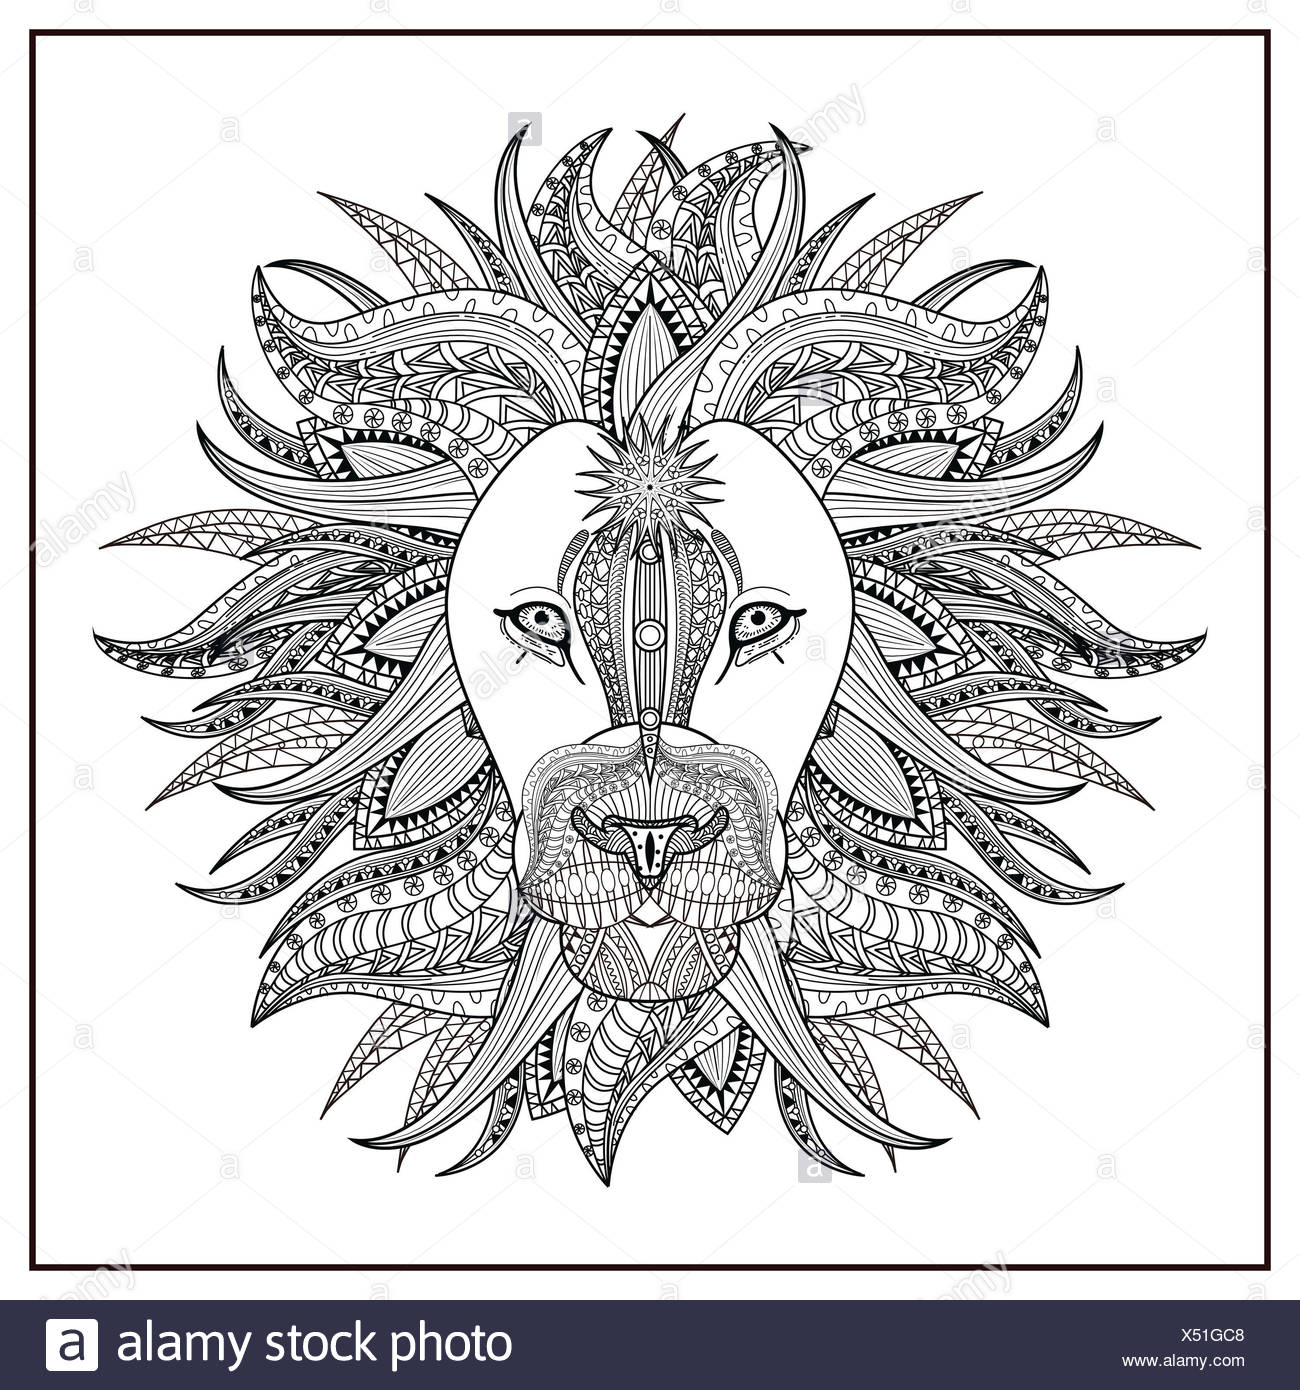 Outline Lion Head Animal Vector Stockfotos & Outline Lion Head ...